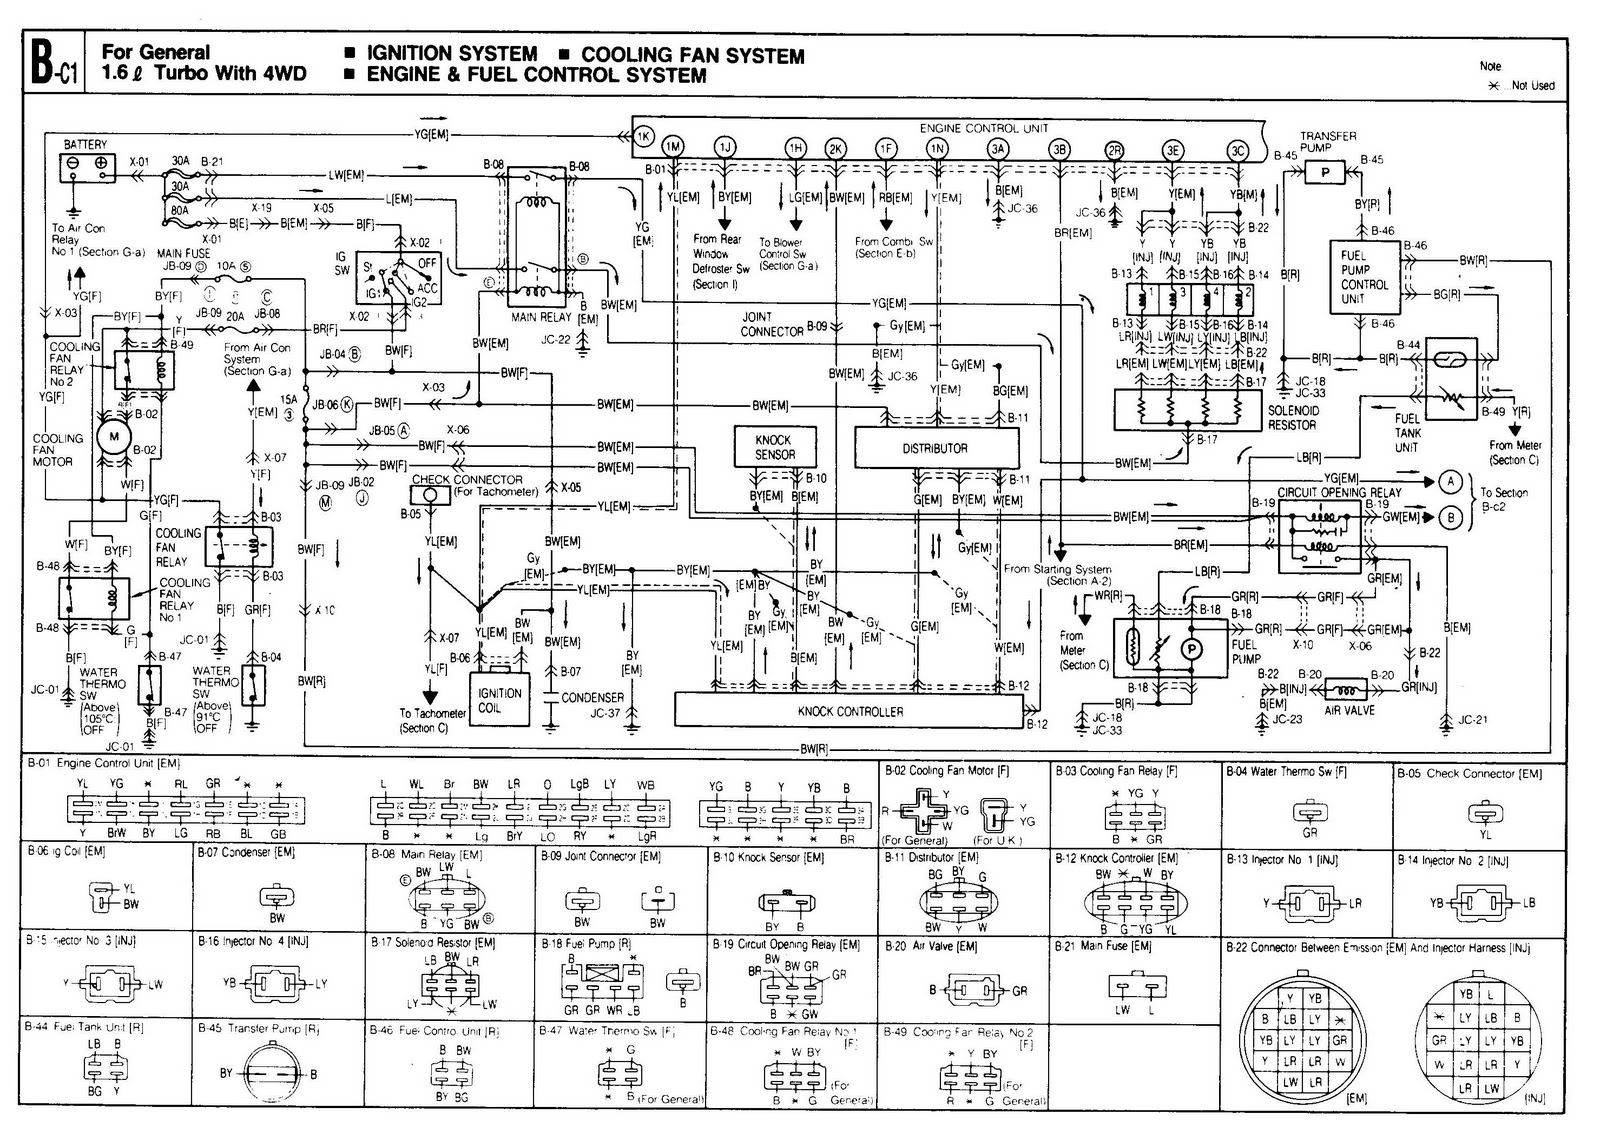 Breathtaking bmw e90 wiring diagram pdf gallery best image diagram breathtaking bmw e90 wiring diagram pdf gallery best image diagram cheapraybanclubmaster Images